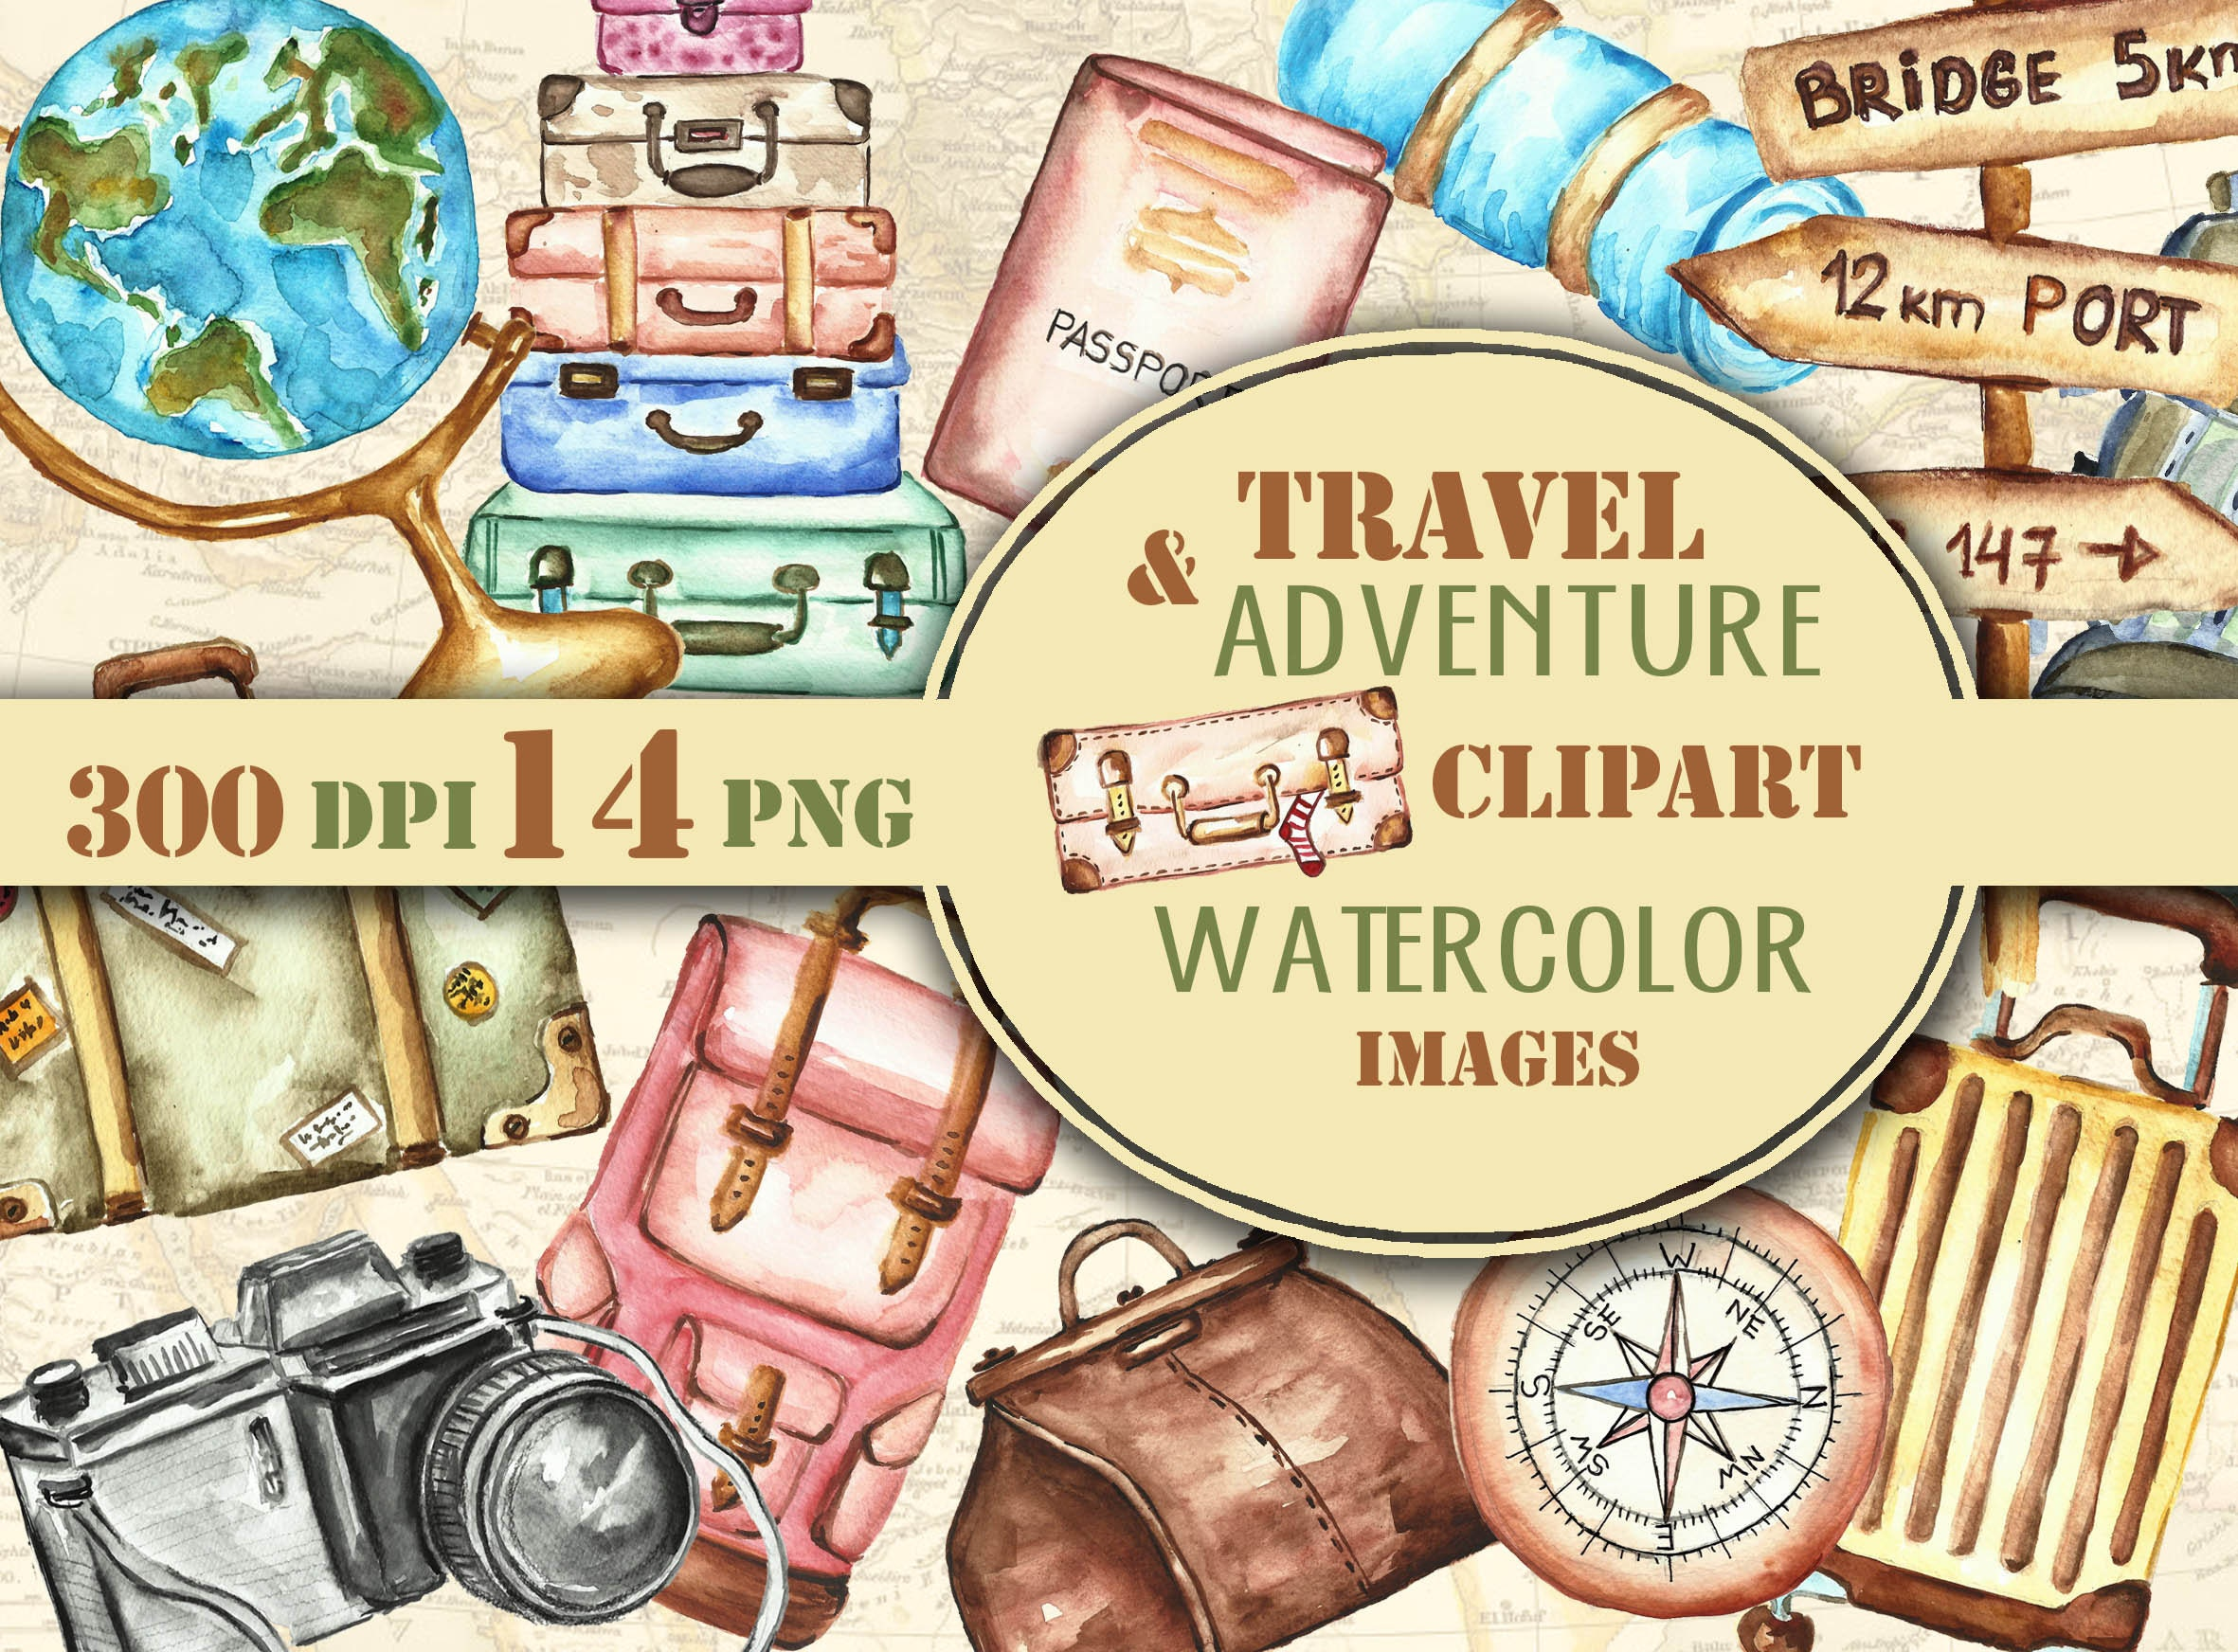 Travel & Adventure clipart watercolor hand drawn. Travel